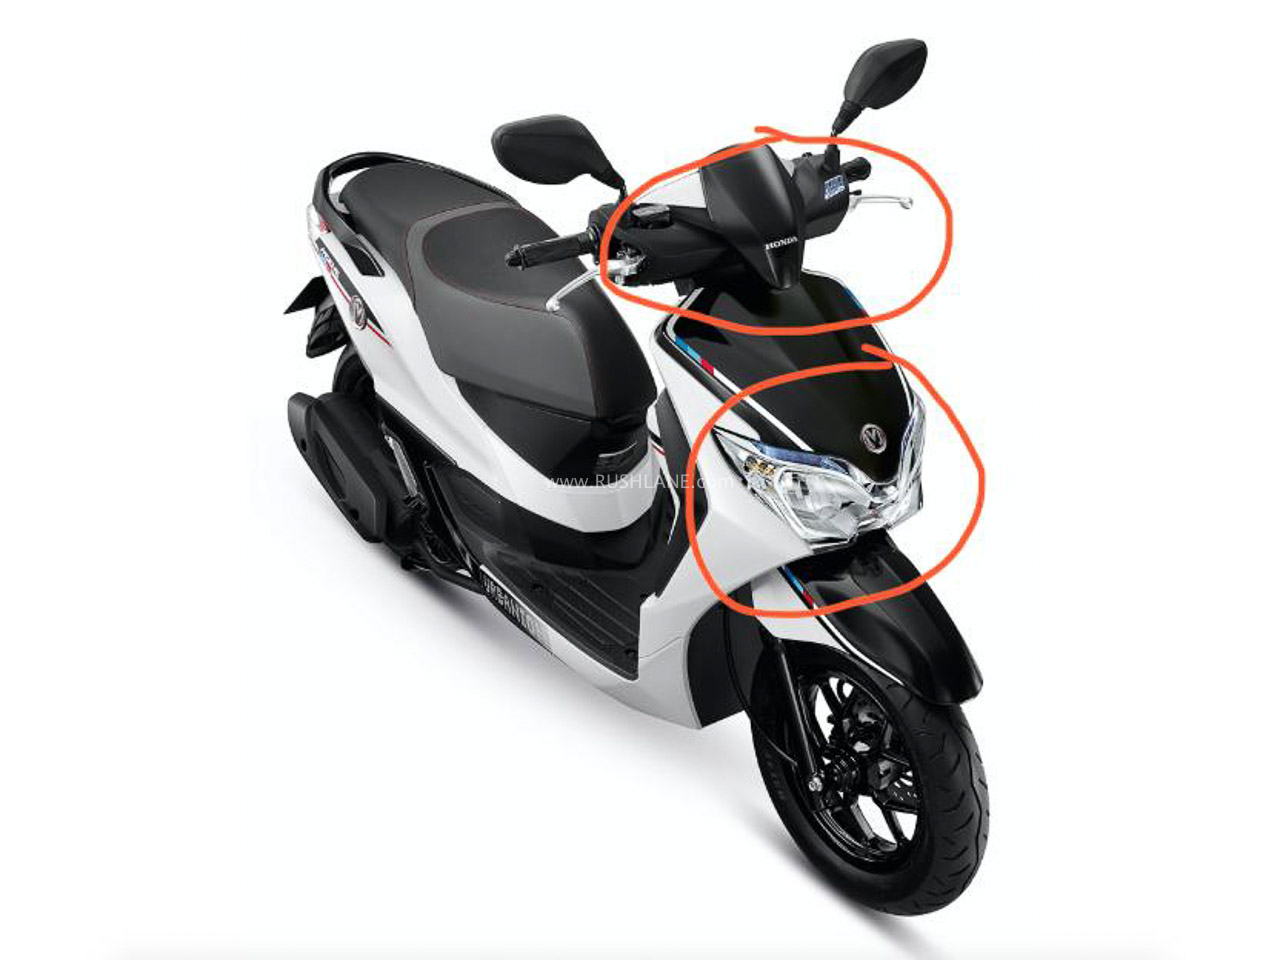 Honda Moove electric scooter